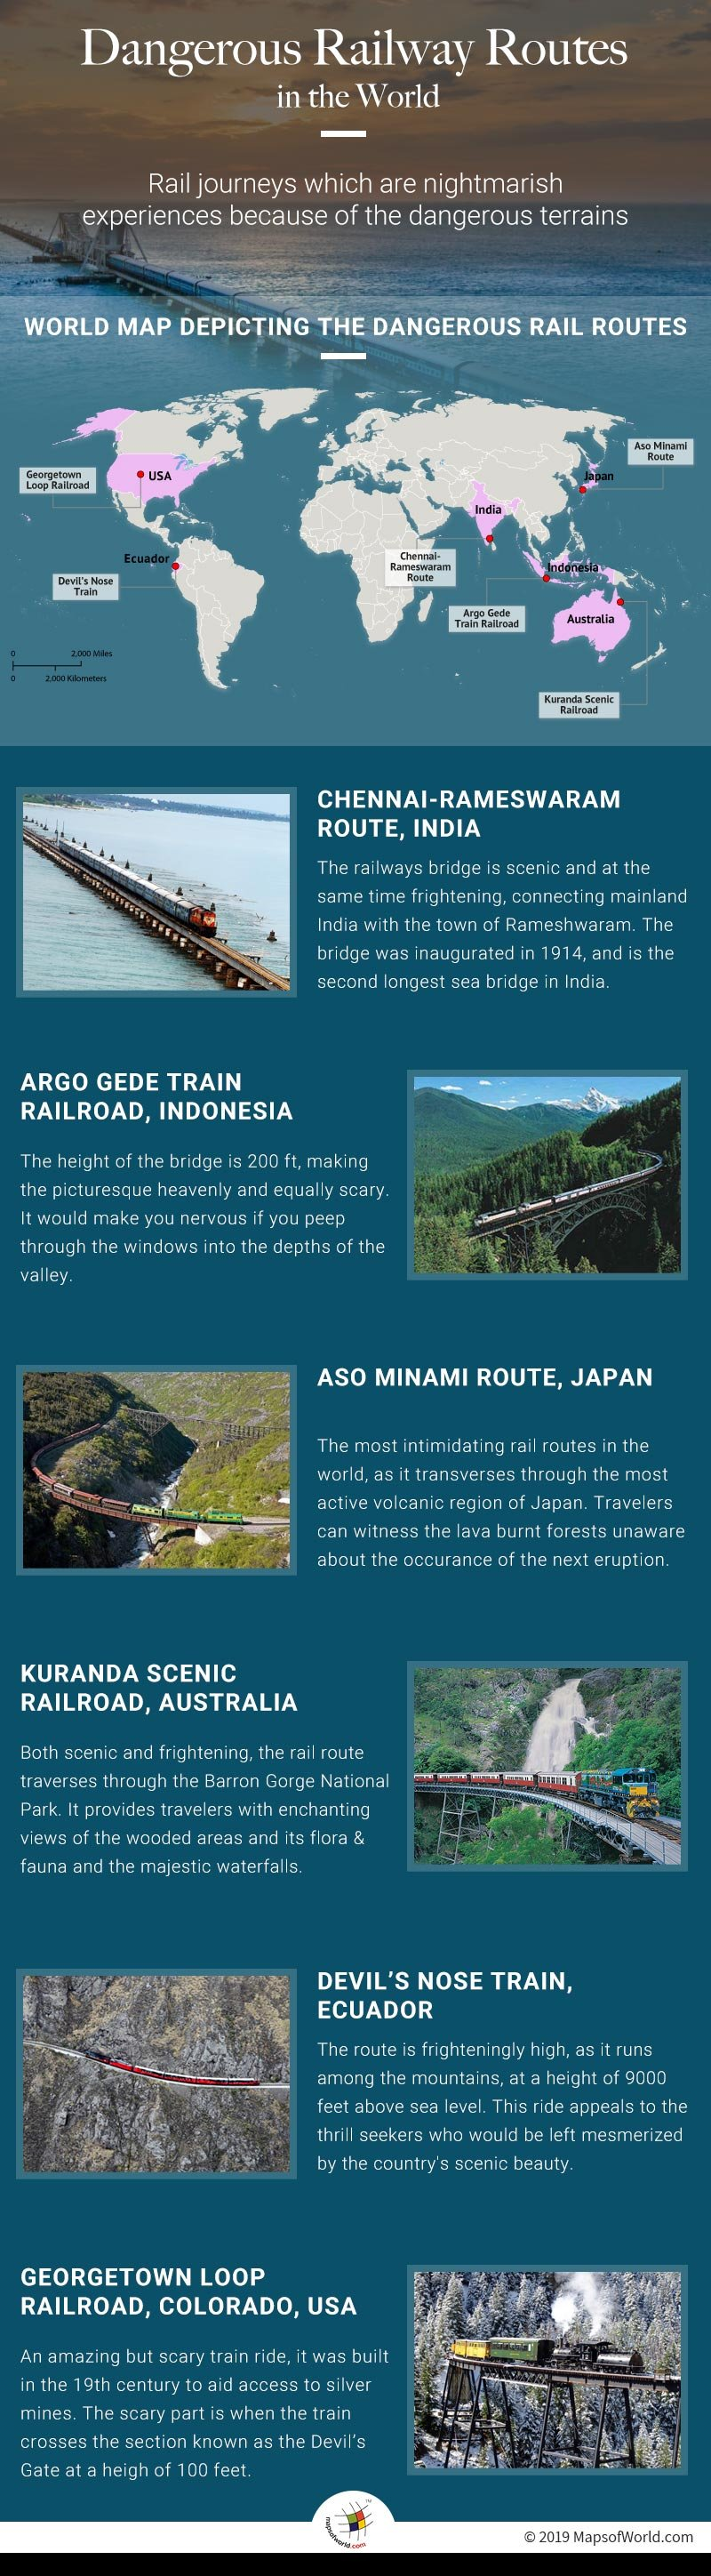 Dangerous Railway Routes in The World